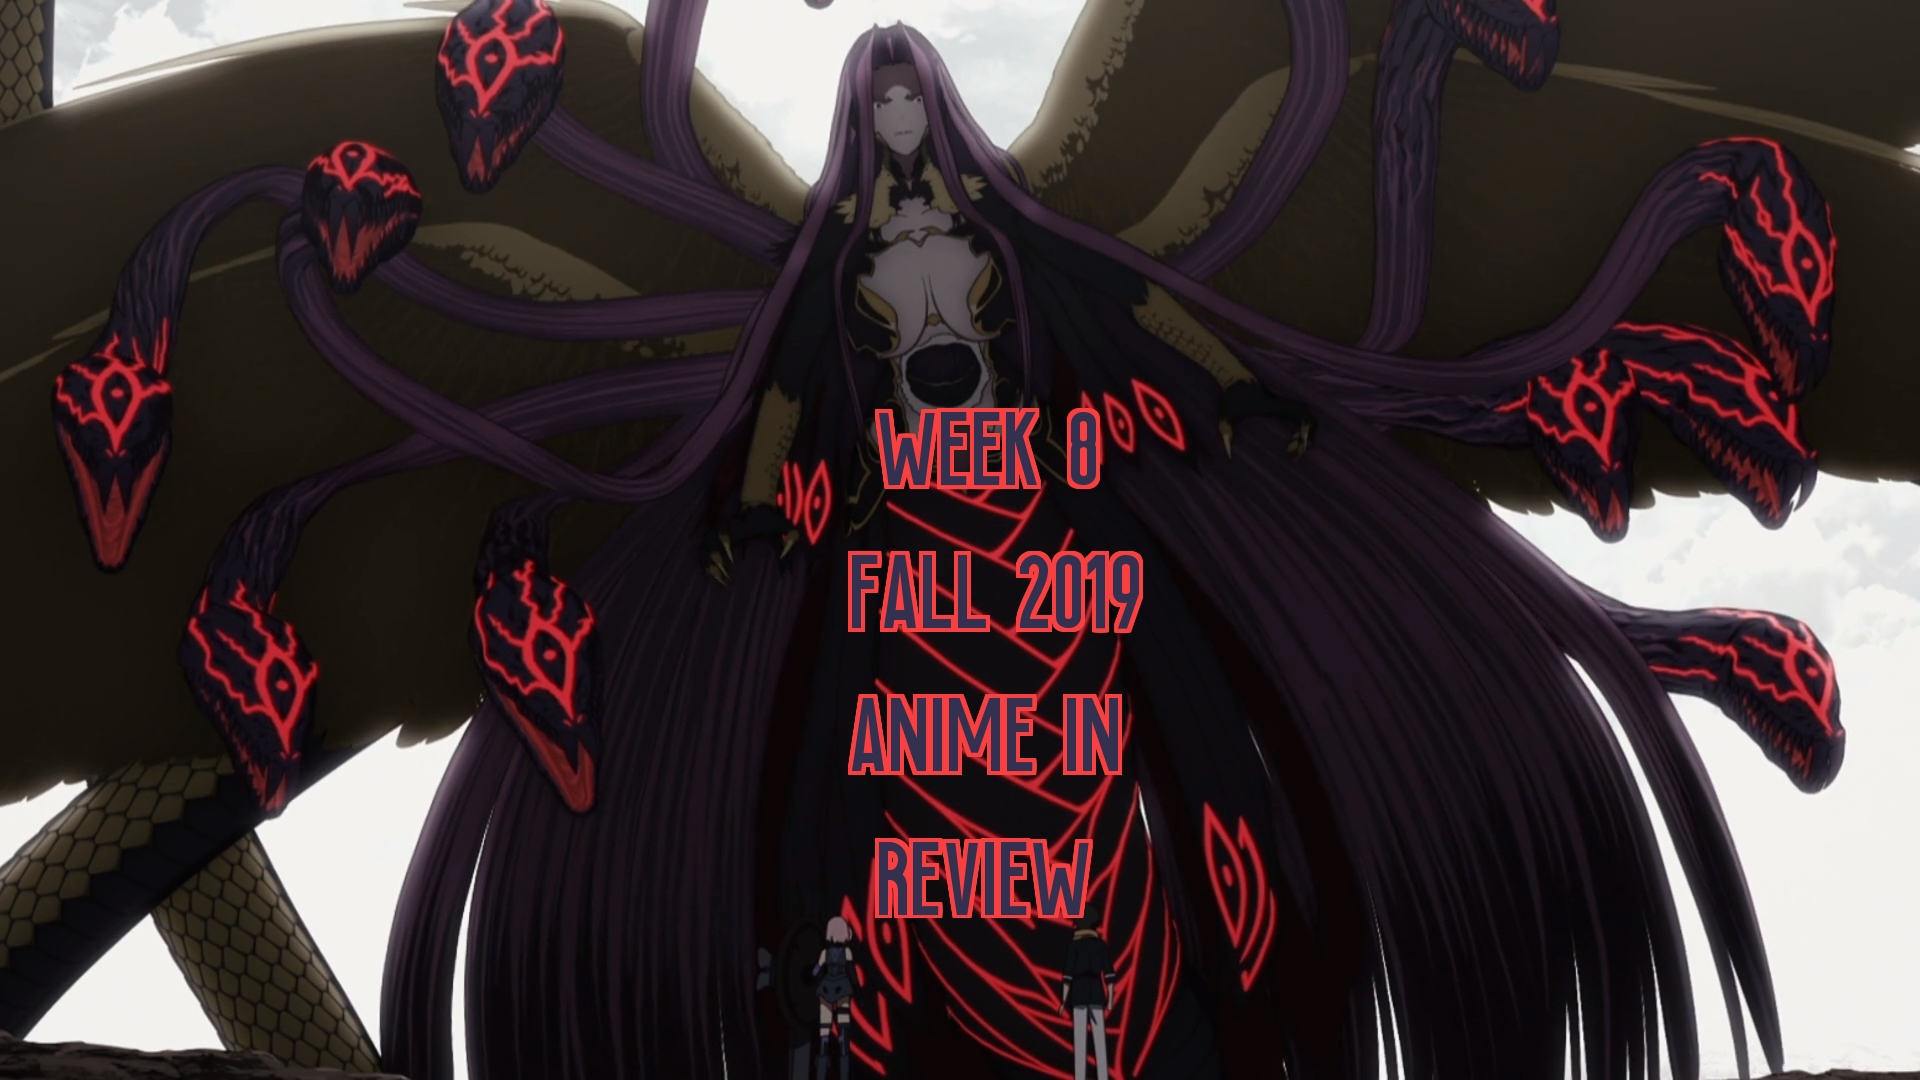 Week 8 of Fall 2019 Anime In Review